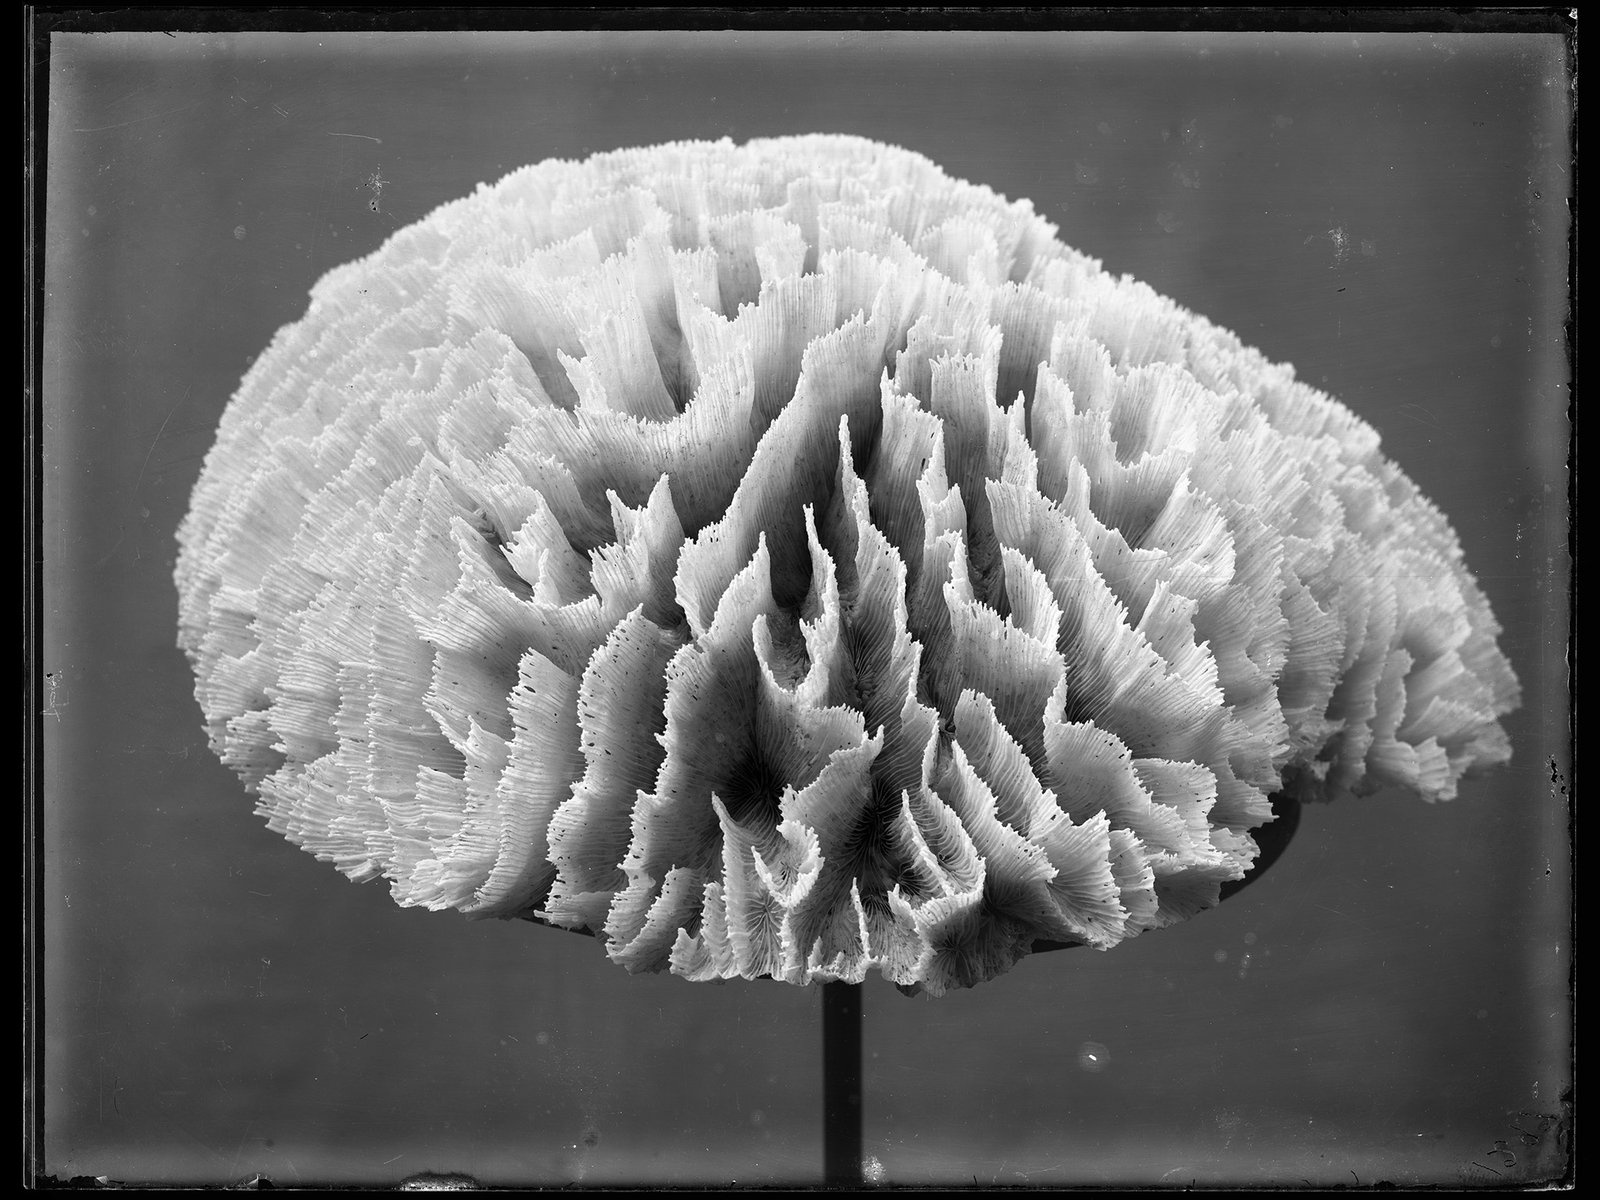 Capturing Nature - Australian Museum Archival Photography